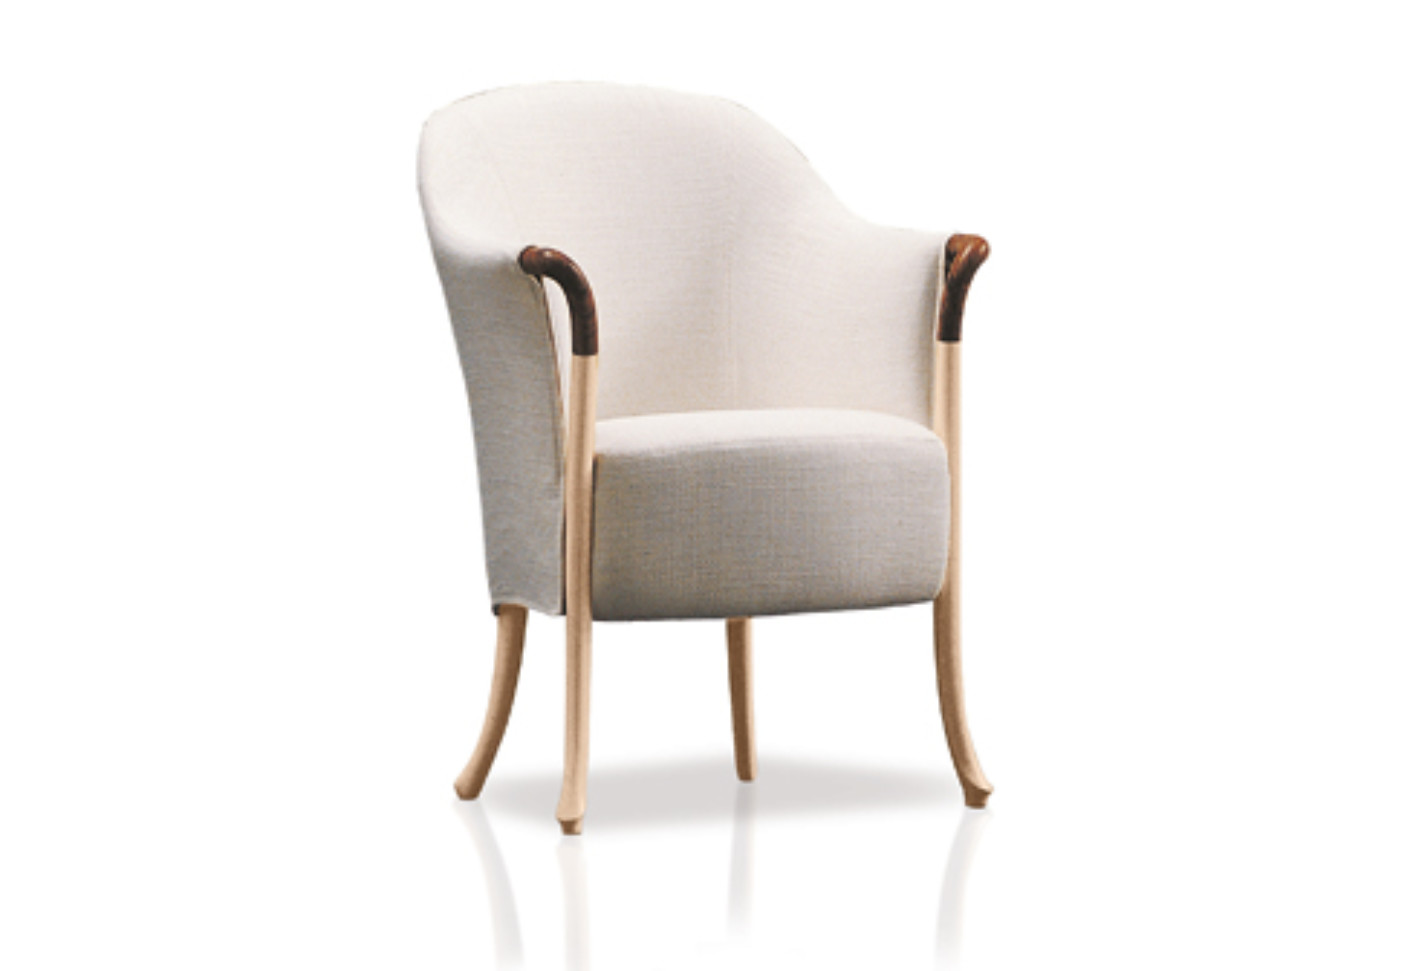 Chair Sessel Progetti By Giorgetti | Stylepark